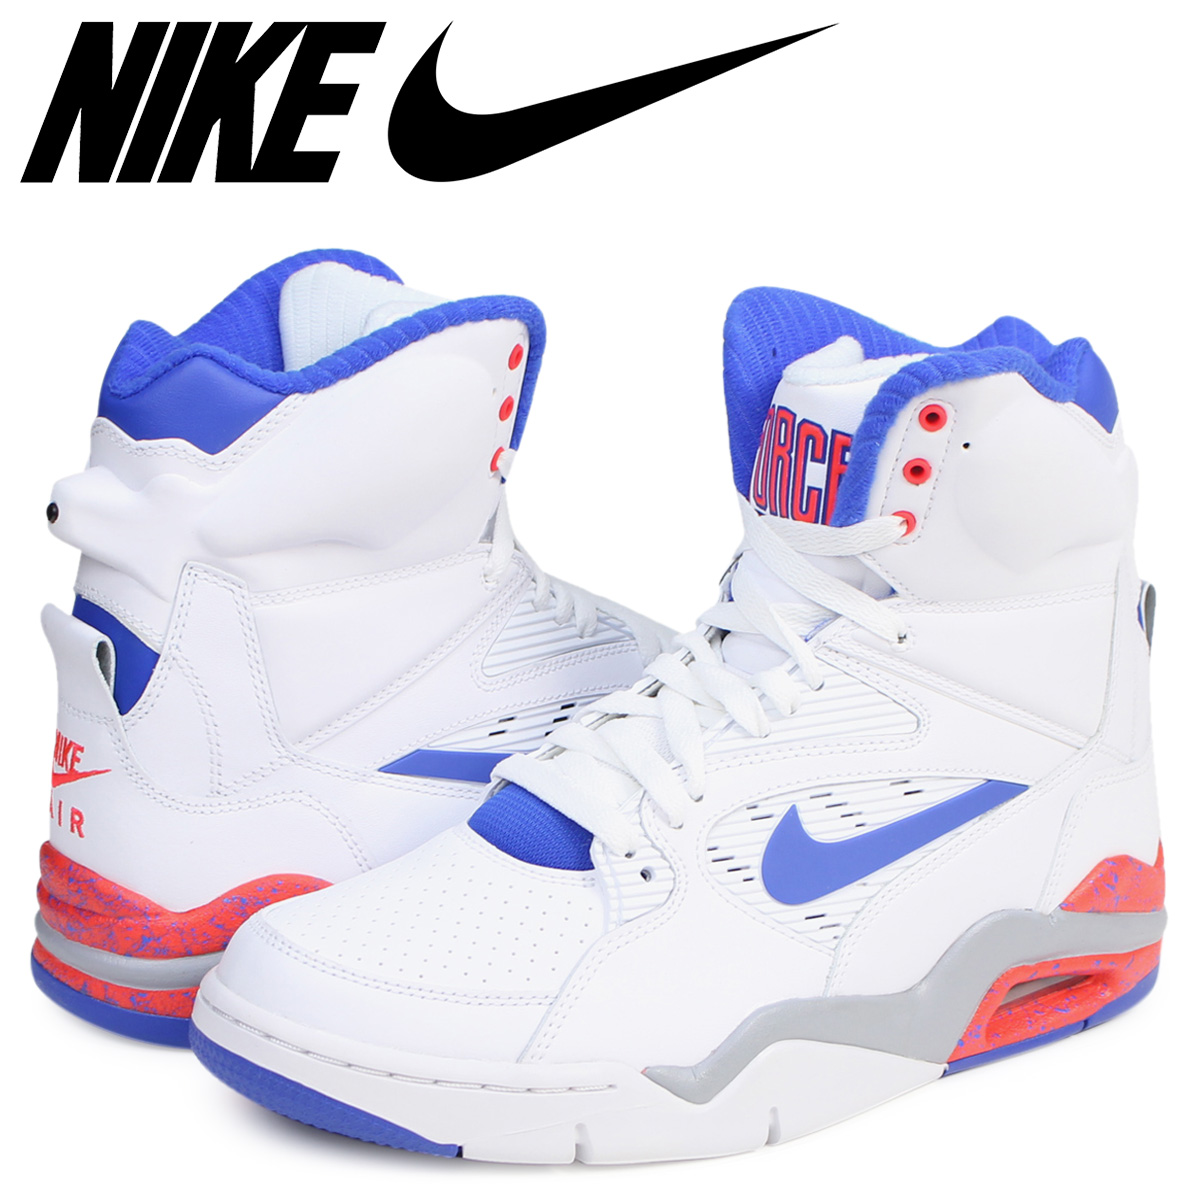 code promo 327cf 2c1b9 NIKE Nike air command force sneakers AIR COMMAND FORCE 684,715-101 men's  shoes ultramarine blue white [7/6 Shinnyu load] [177]